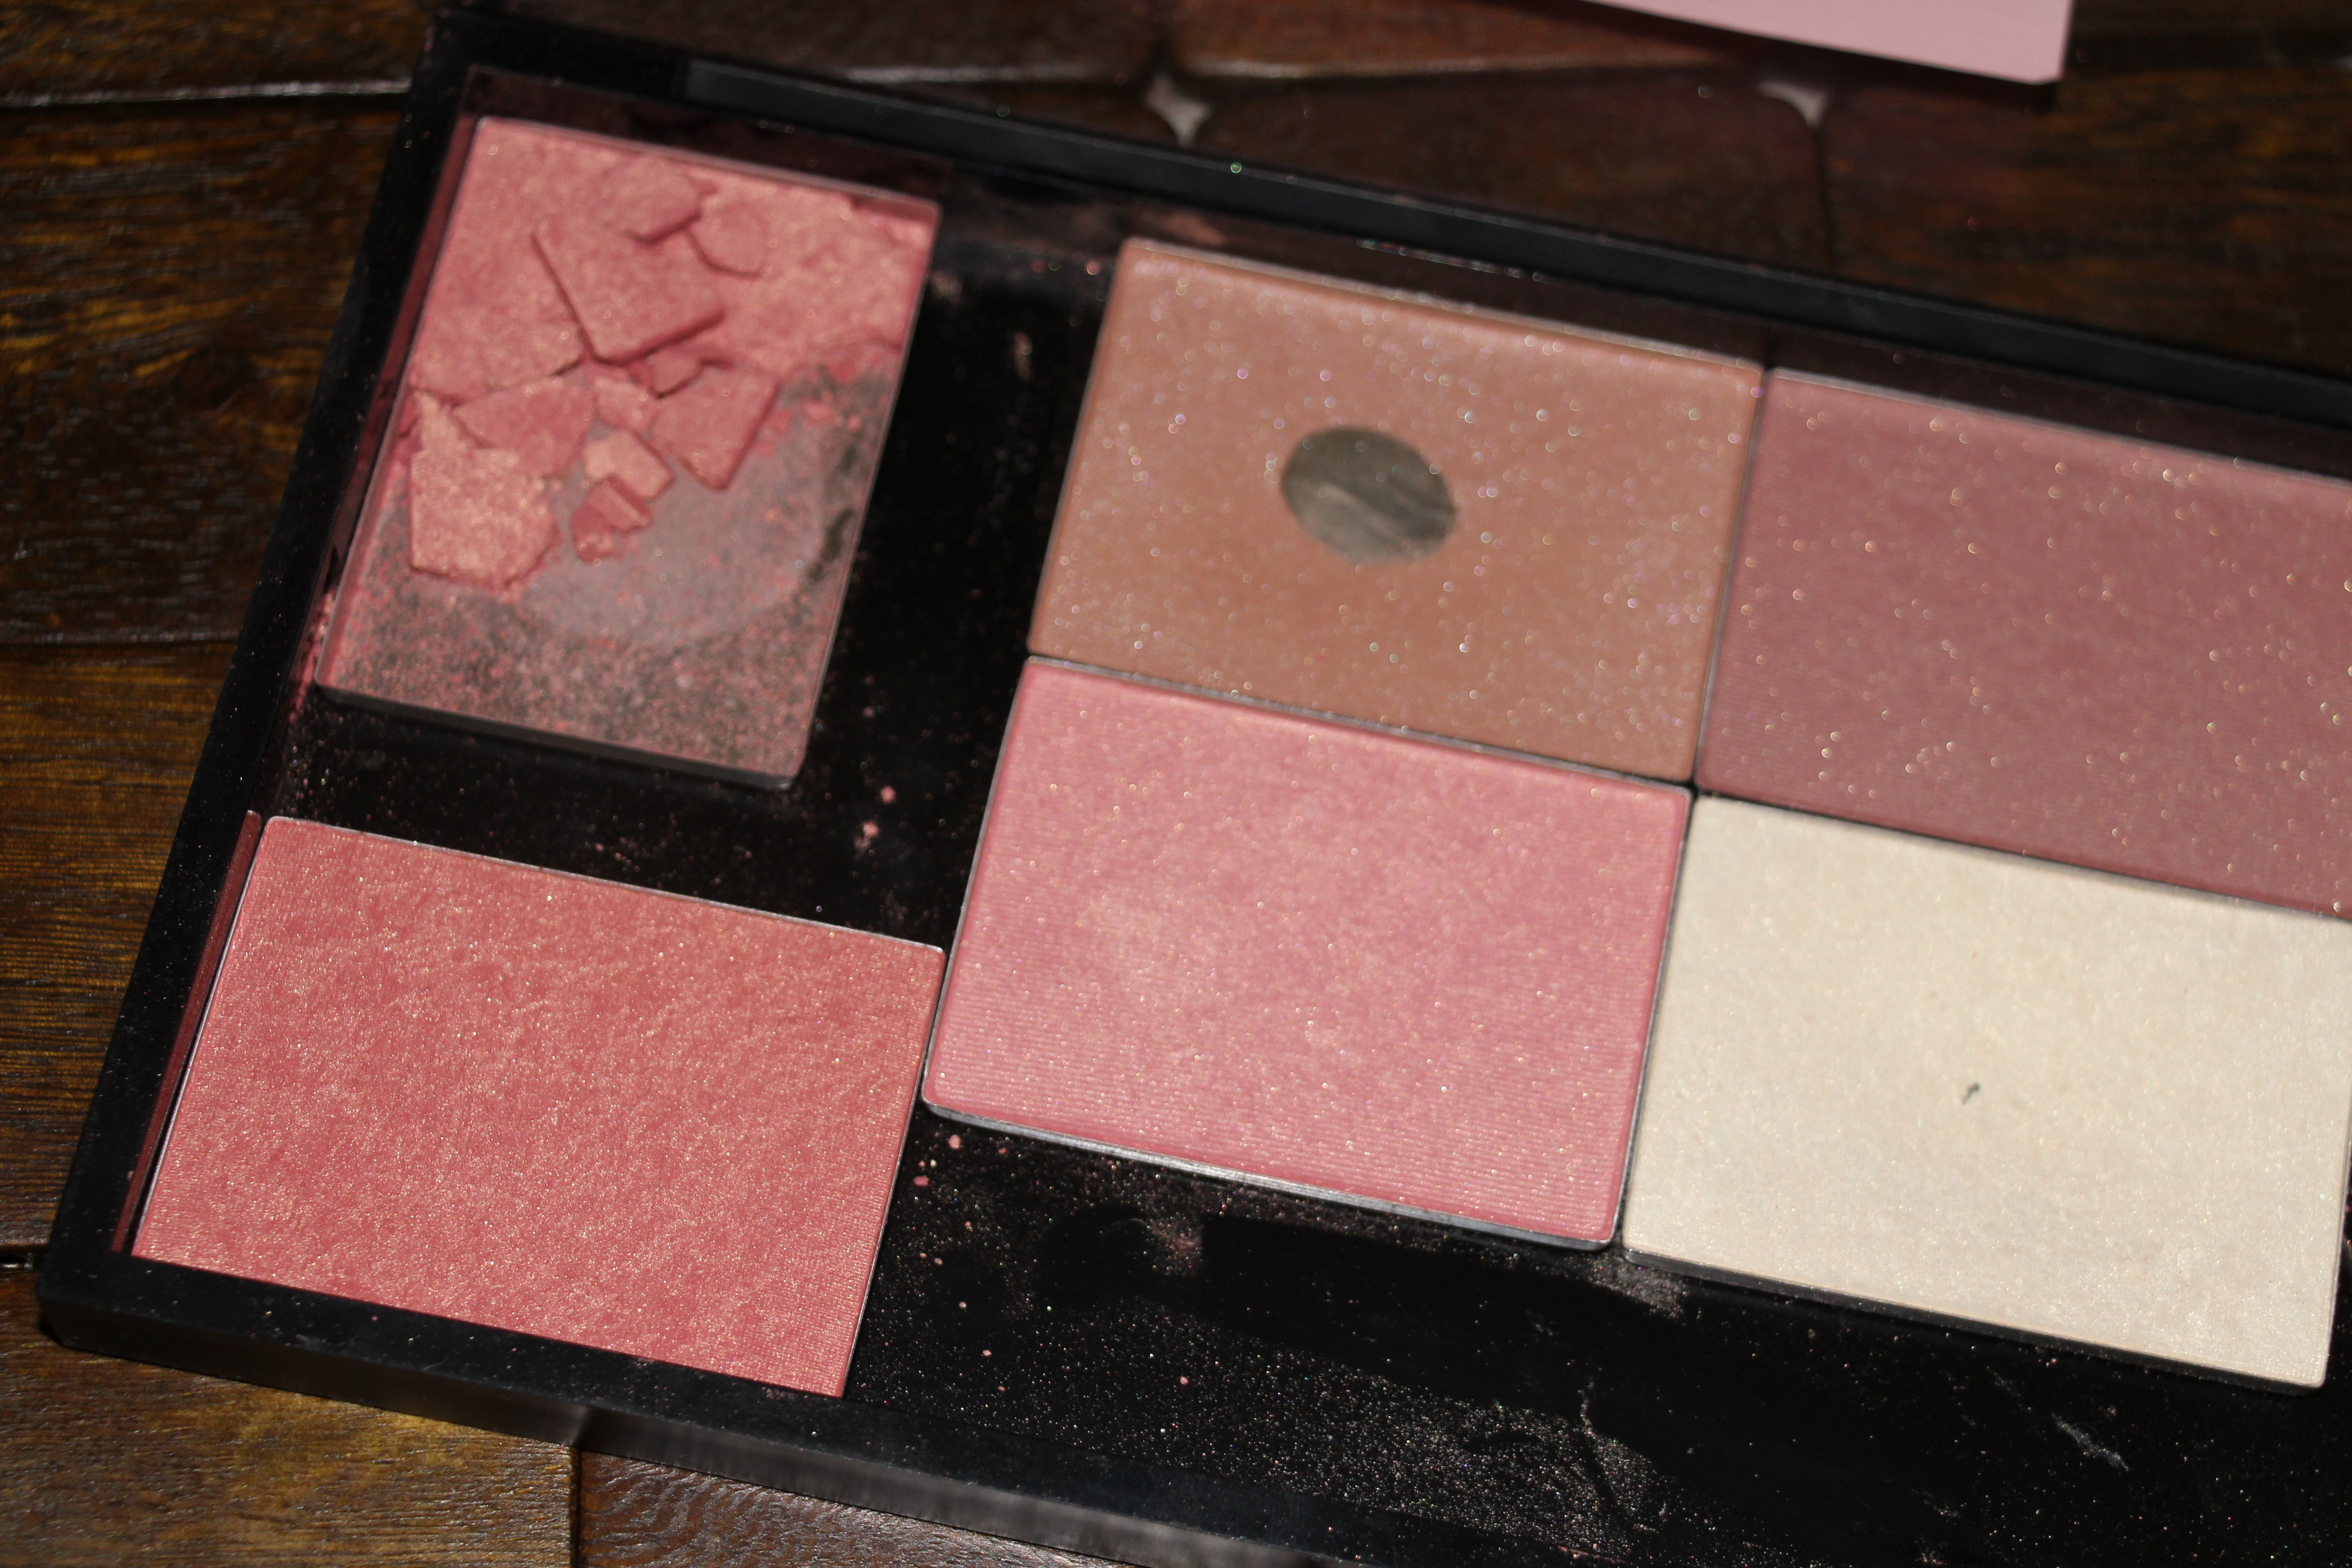 How to Fix Broken Powders, Eye Shadows, etc.